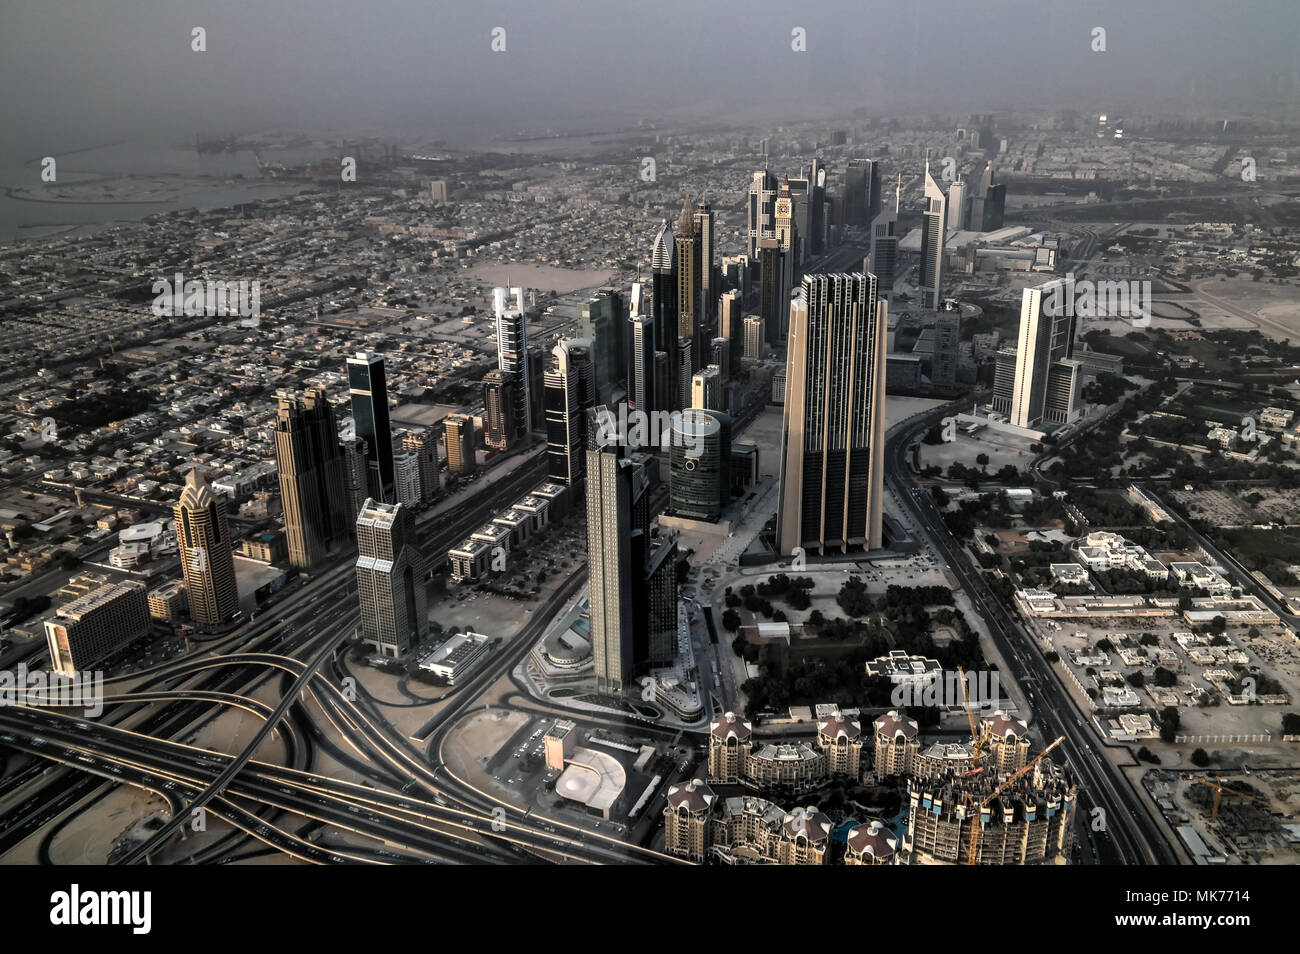 Panorama sunset view to Dubai skyscrapers in UAE - Stock Image